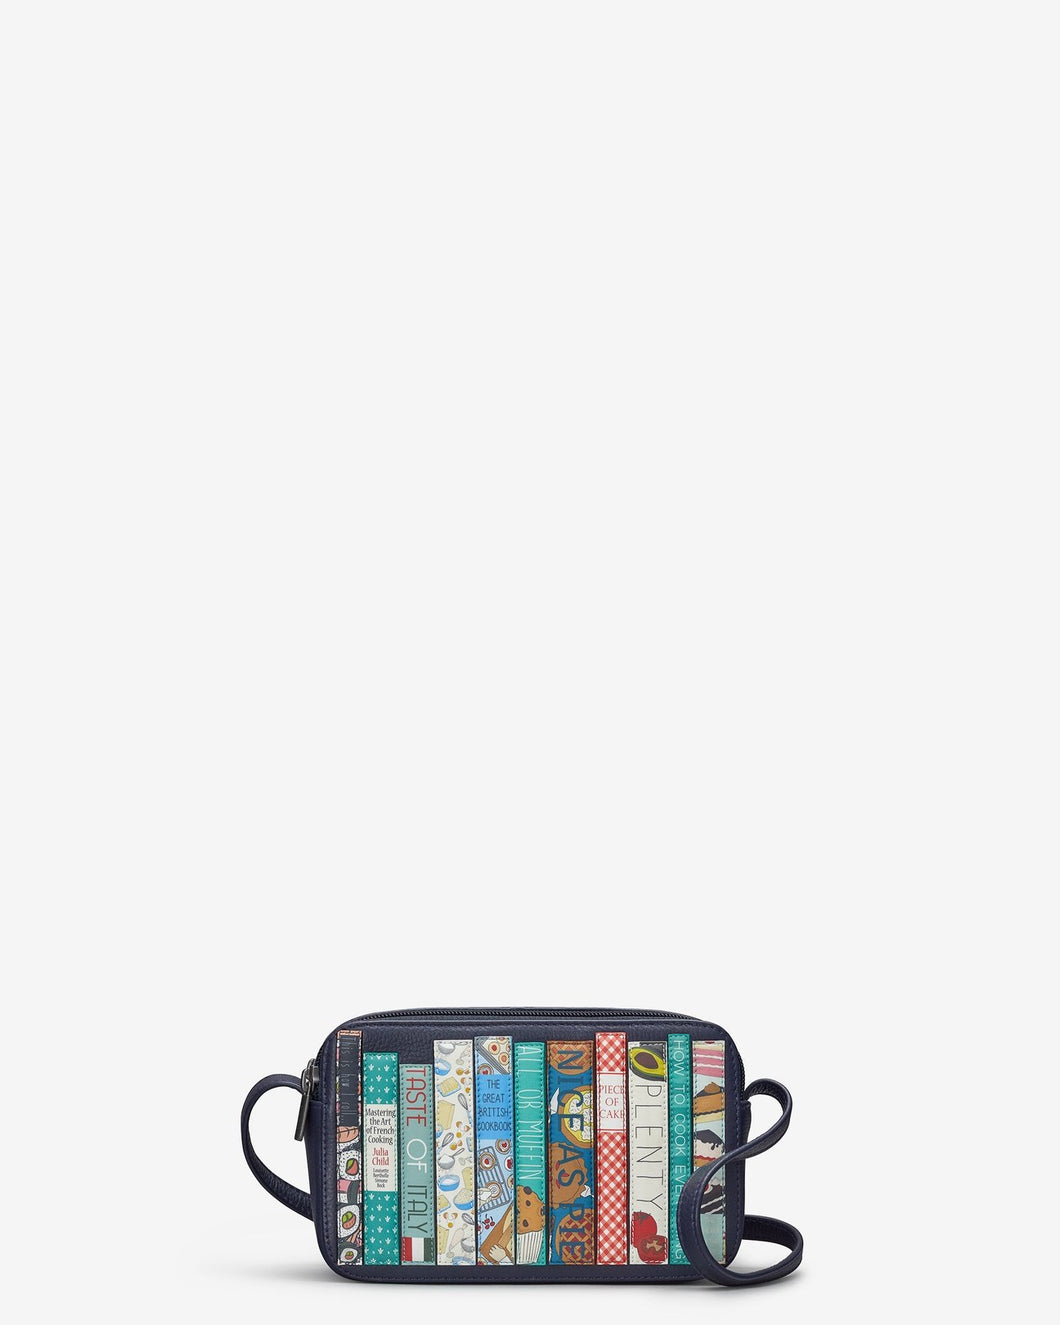 Yoshi Bookworm Cookbook Navy Leather Porter Cross Body Bag - Sands Boutique clothing and gifts